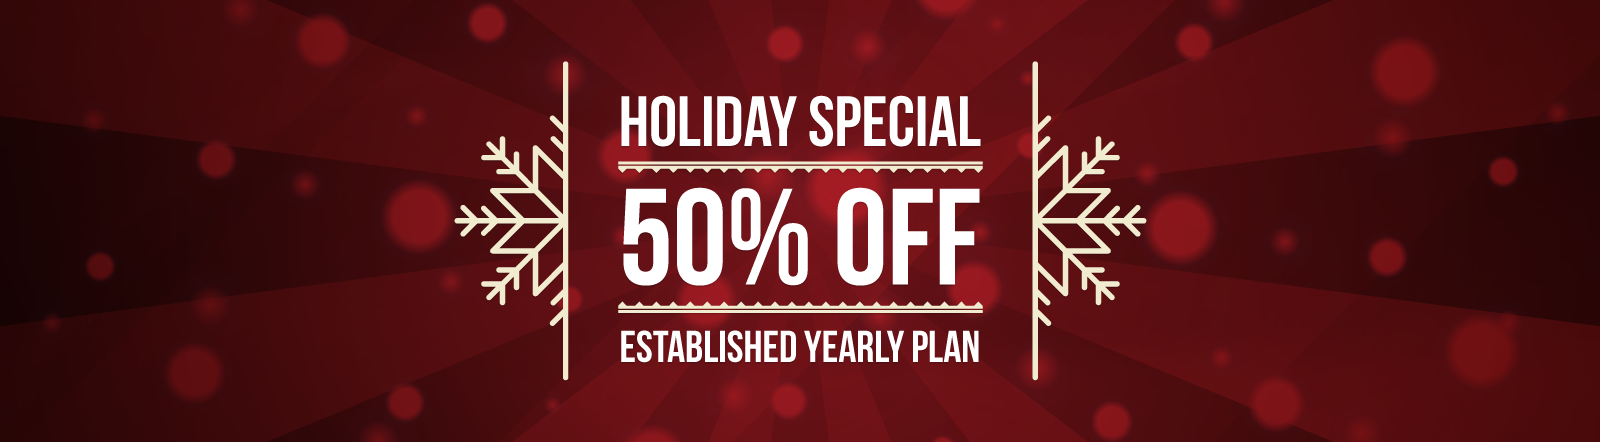 holiday-special-final-website-banner.png